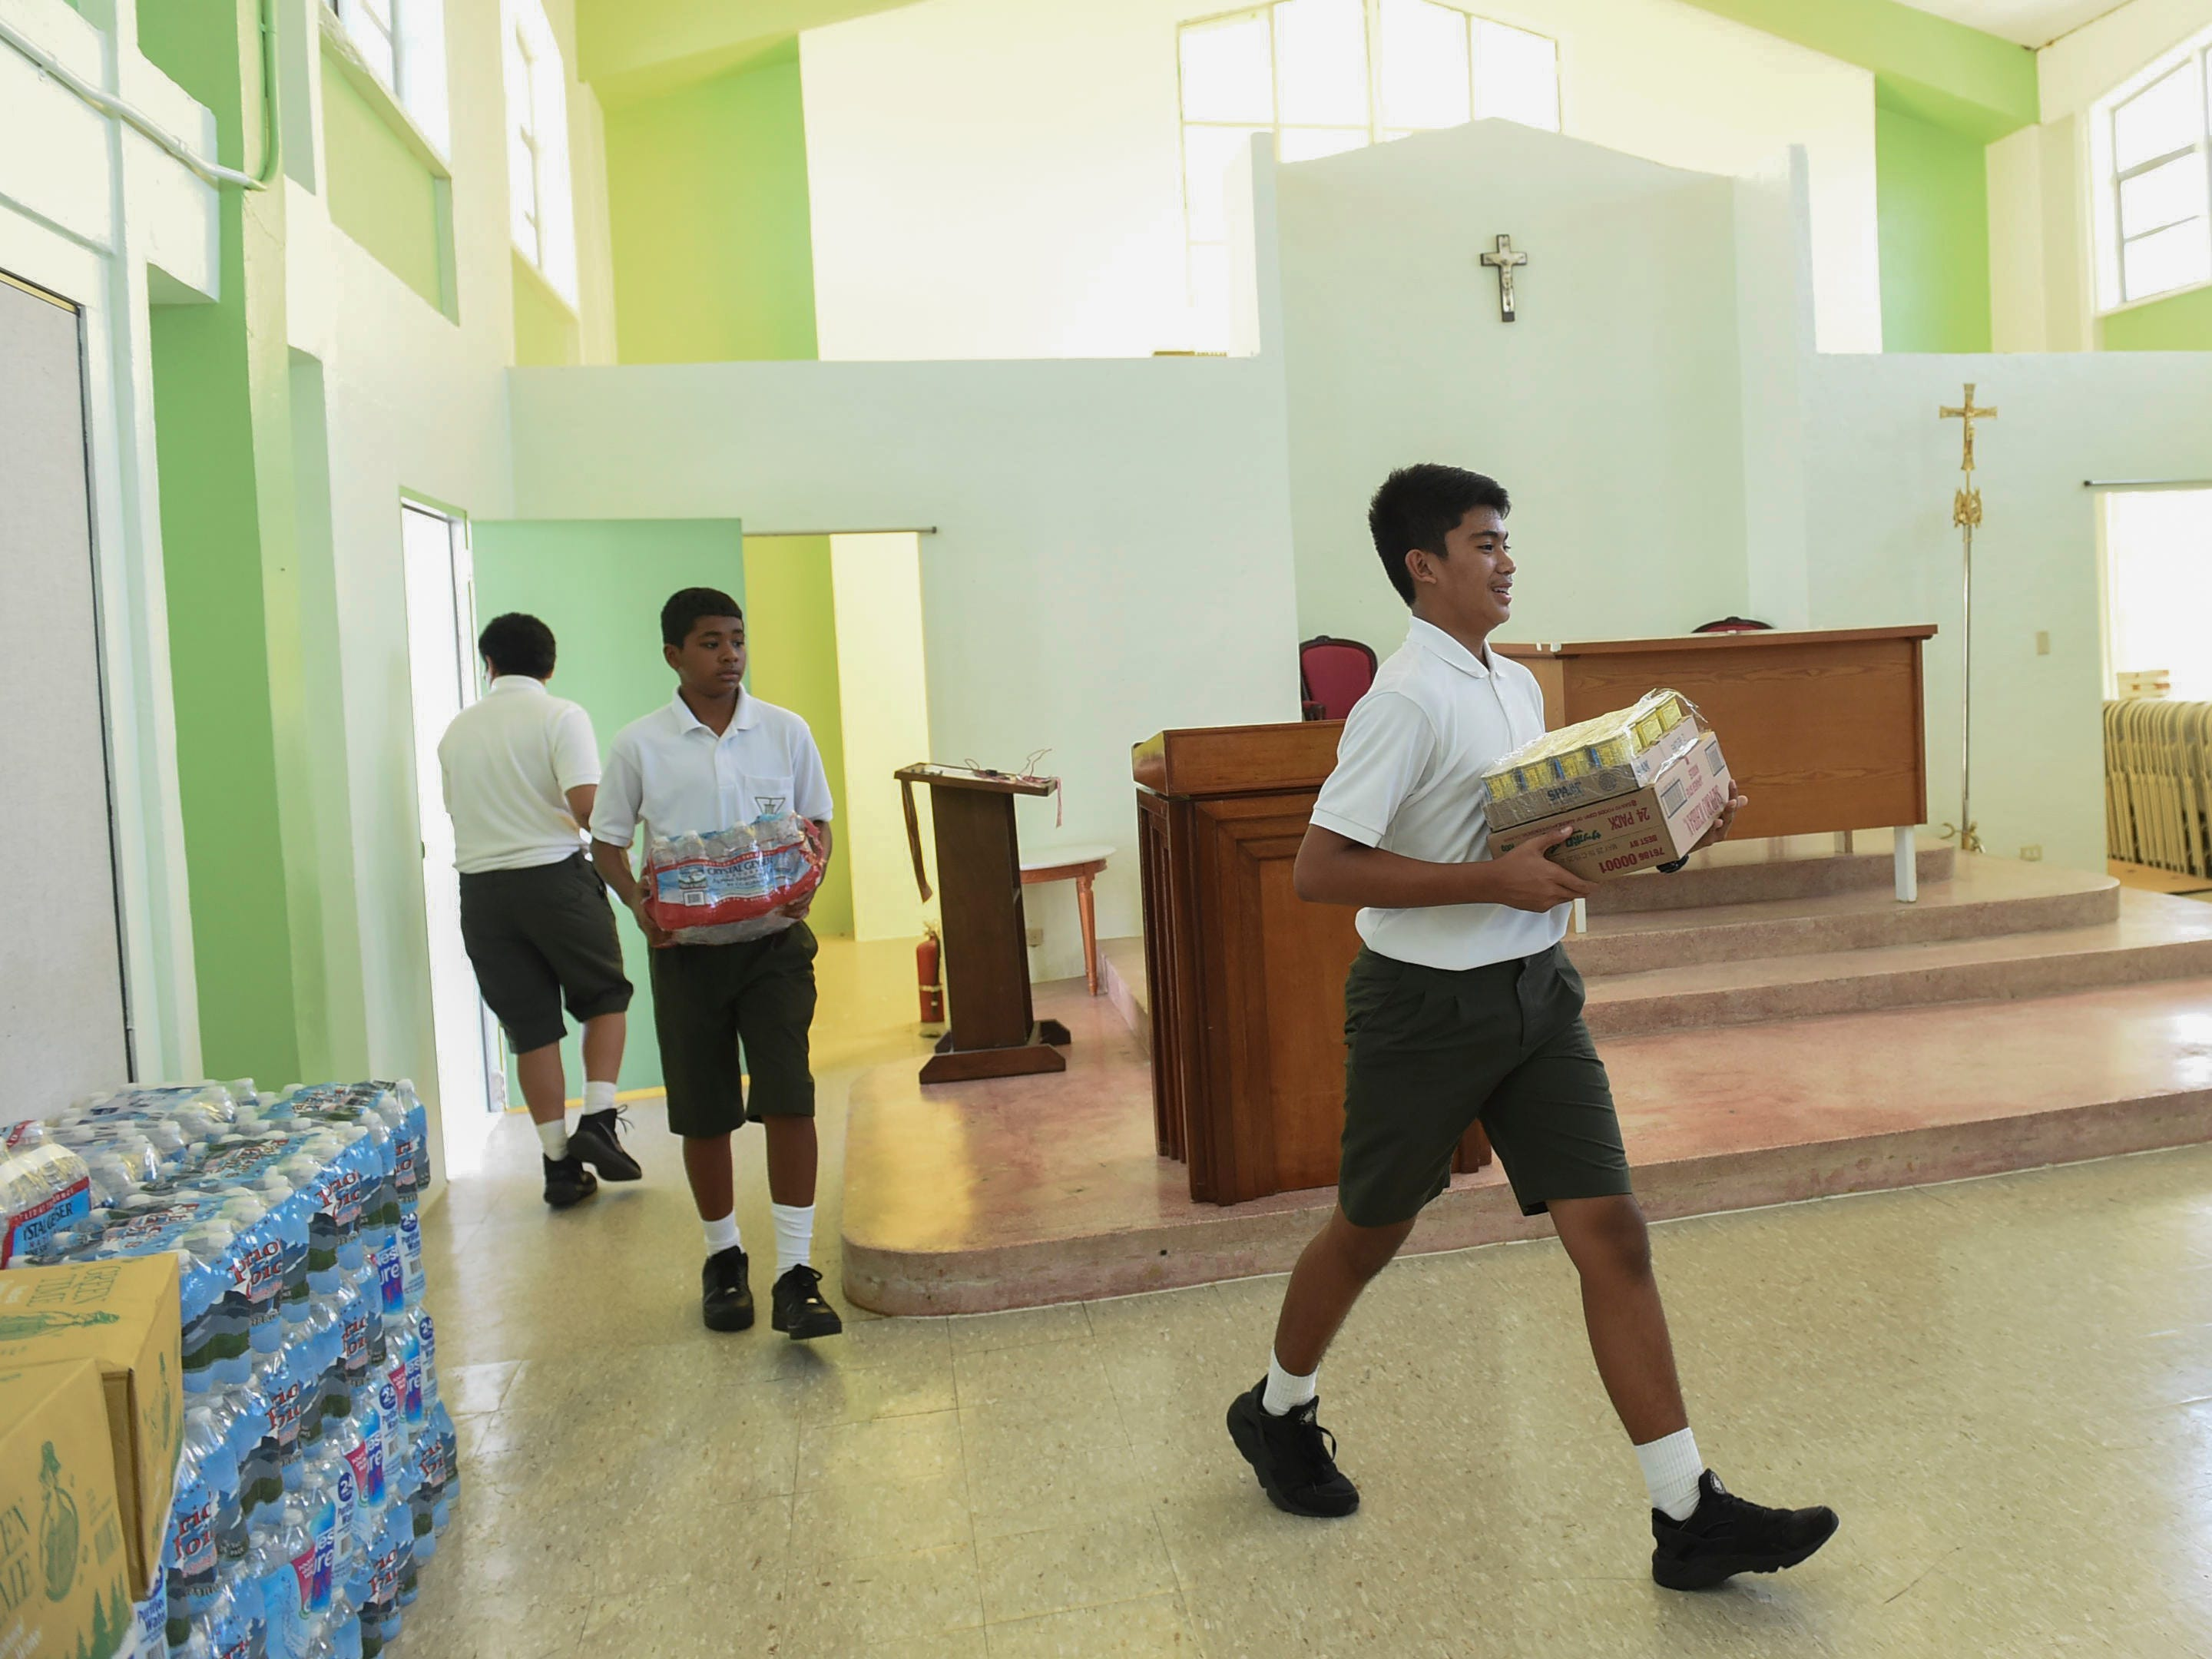 San Vicente Catholic School students Joseph A. Mafnas, 13, right, and Jamarion Santiago, 13, center, help transport donations of bottled water for a Super Typhoon Yutu relief effort spearheaded by local organizations Prutehi Litekyan - Save Ritidian and Håya Foundation at the San Vicente Catholic School campus, Oct. 29, 2018.